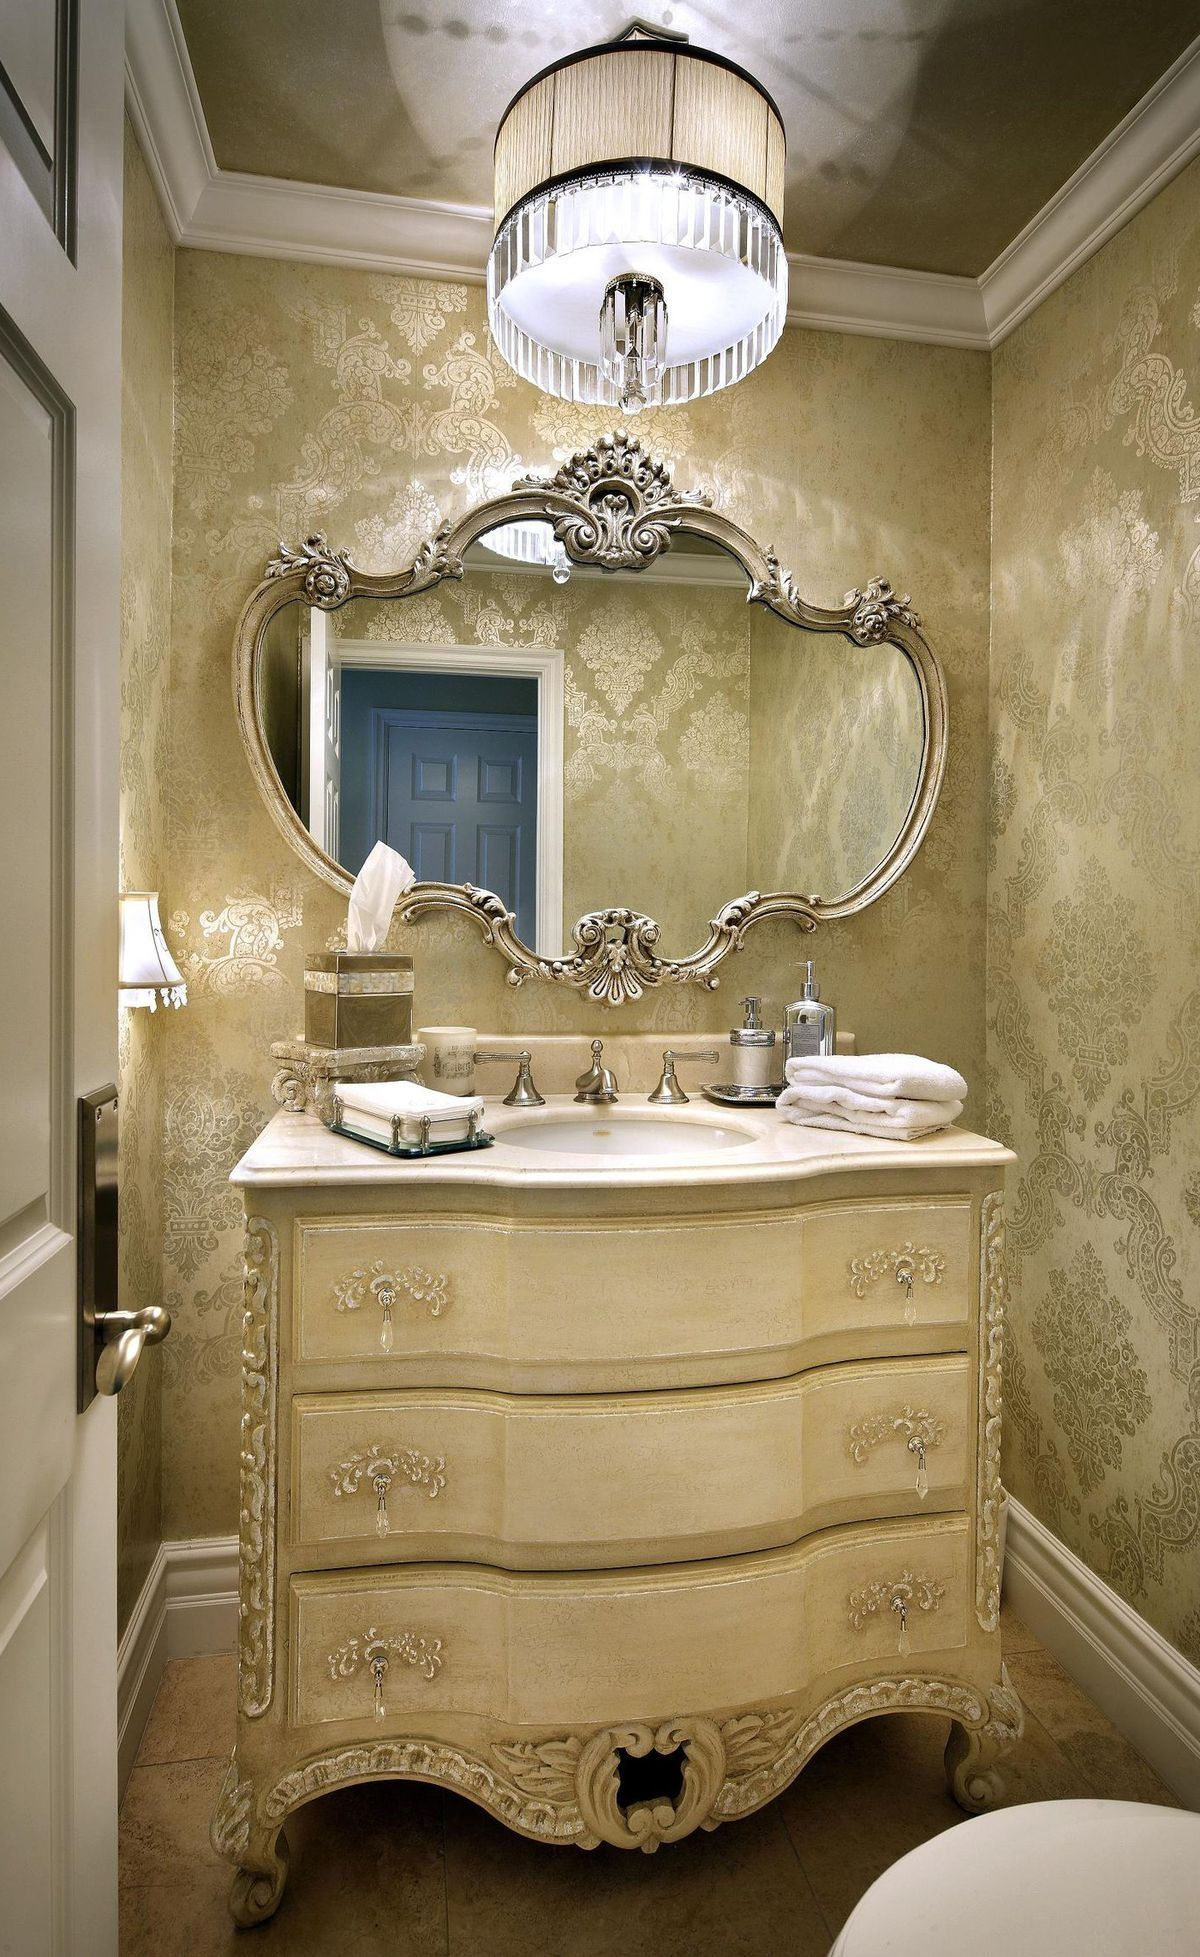 Elegant Powder Room Half Bath Pinterest Powder And Powder Rooms -  fort lauderdale bathroom mirror light